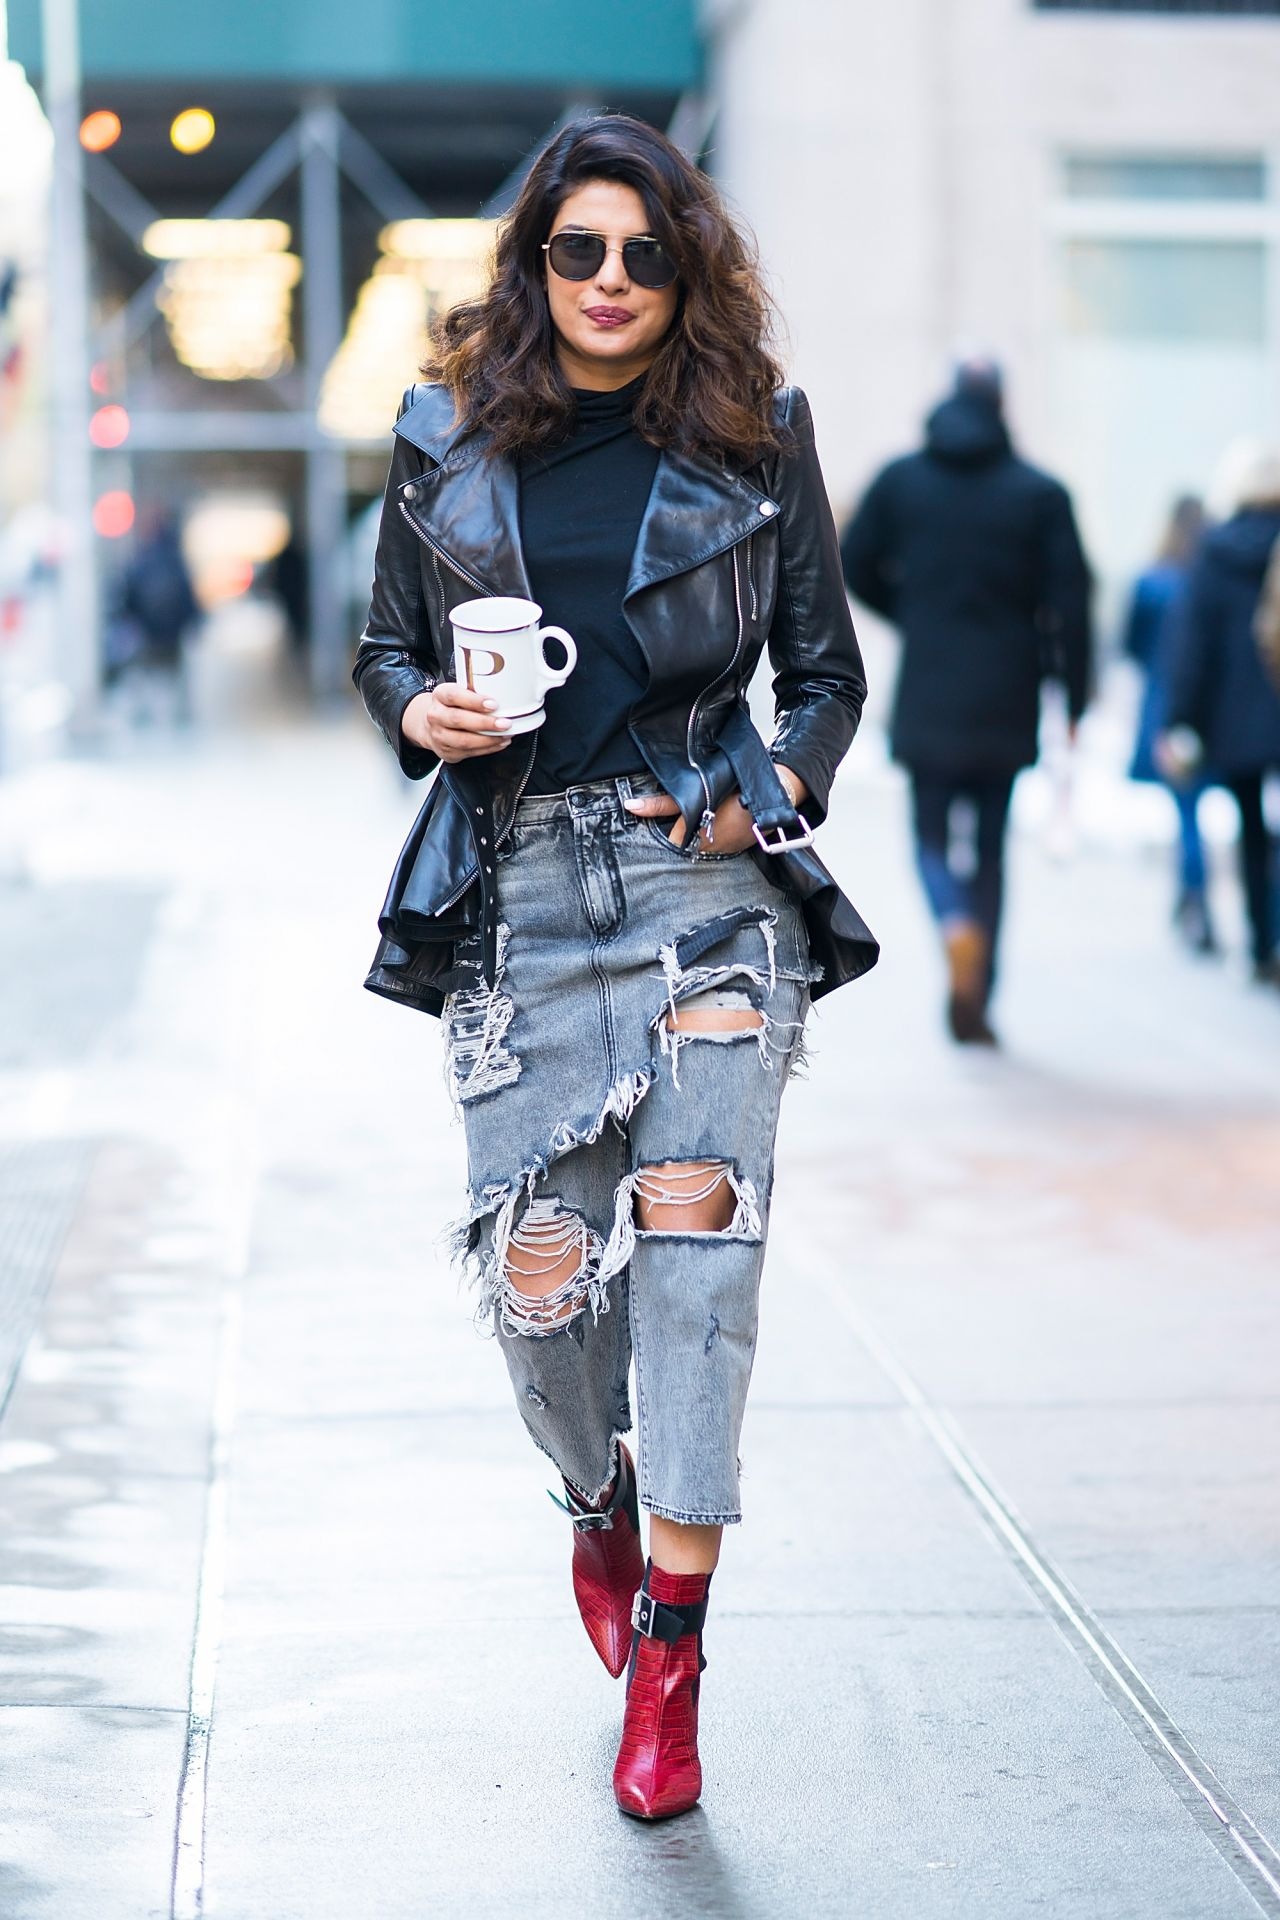 Street Style India Fashion Blog: Priyanka Chopra Urban Street Style